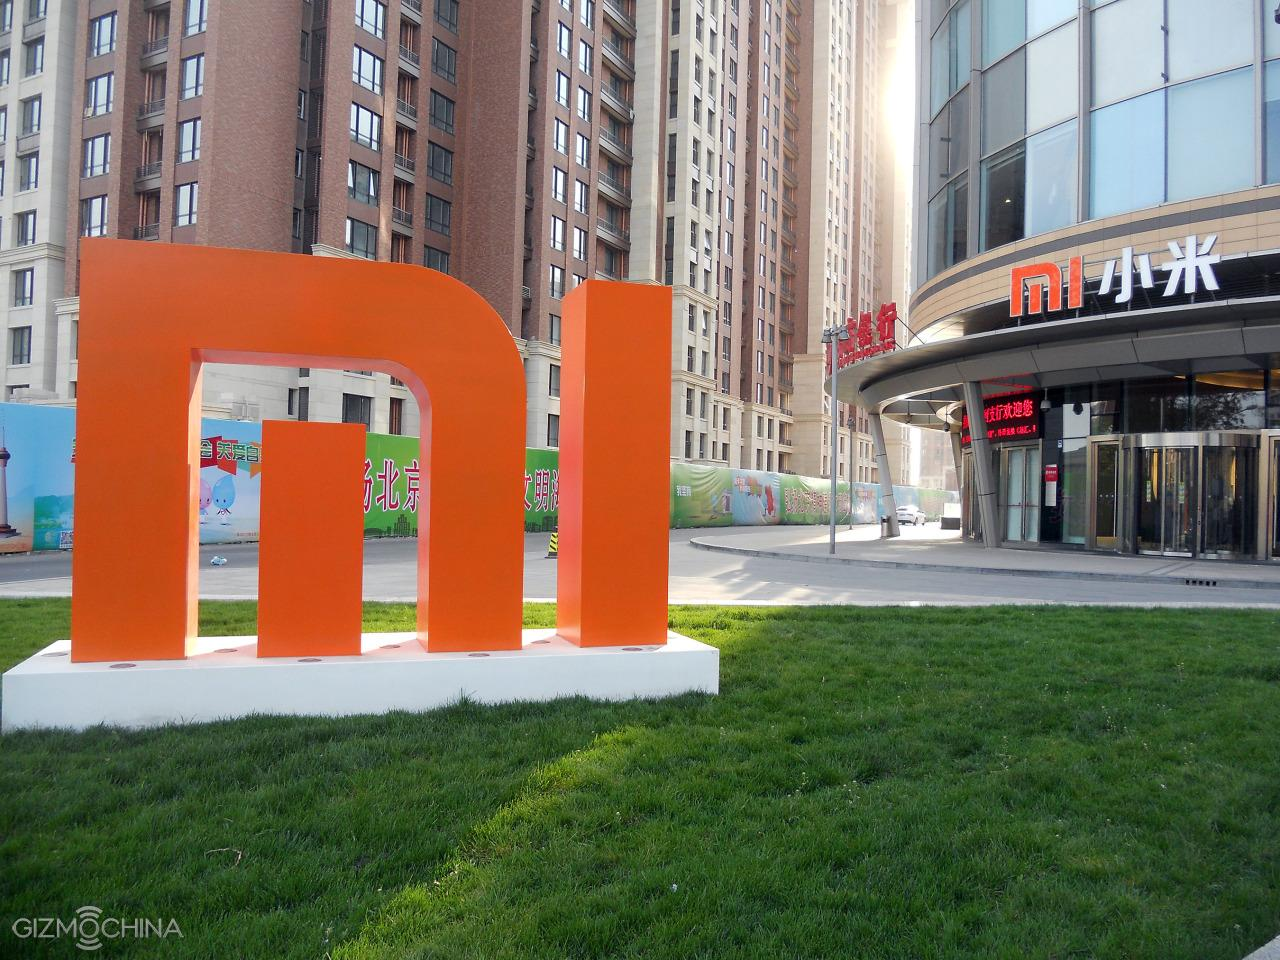 Xiaomi is giving out 1000 shares